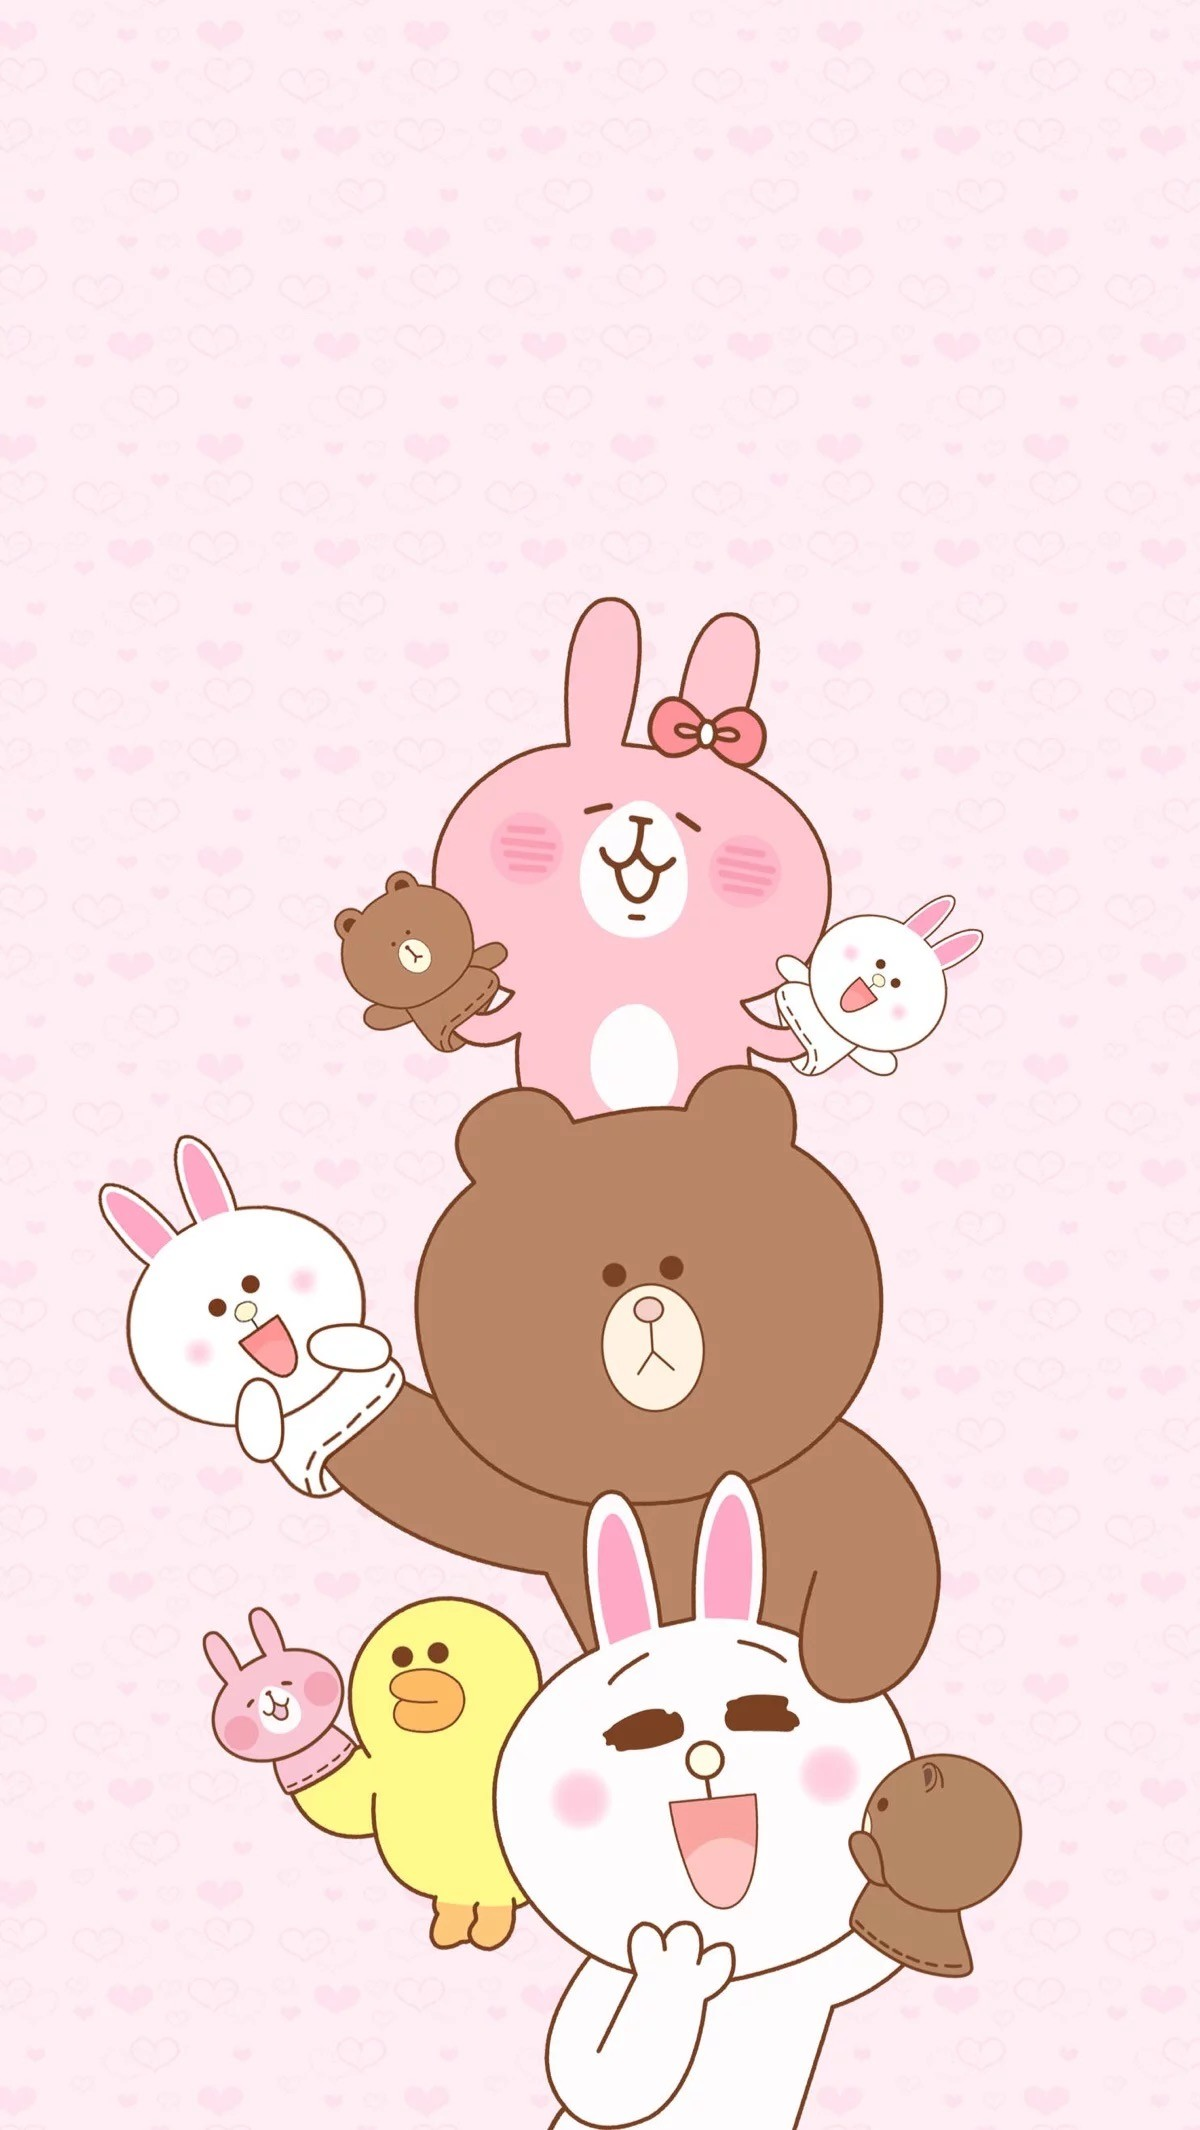 Cute kawaii wallpaper for iphone 82 images - Kawaii anime iphone wallpaper ...